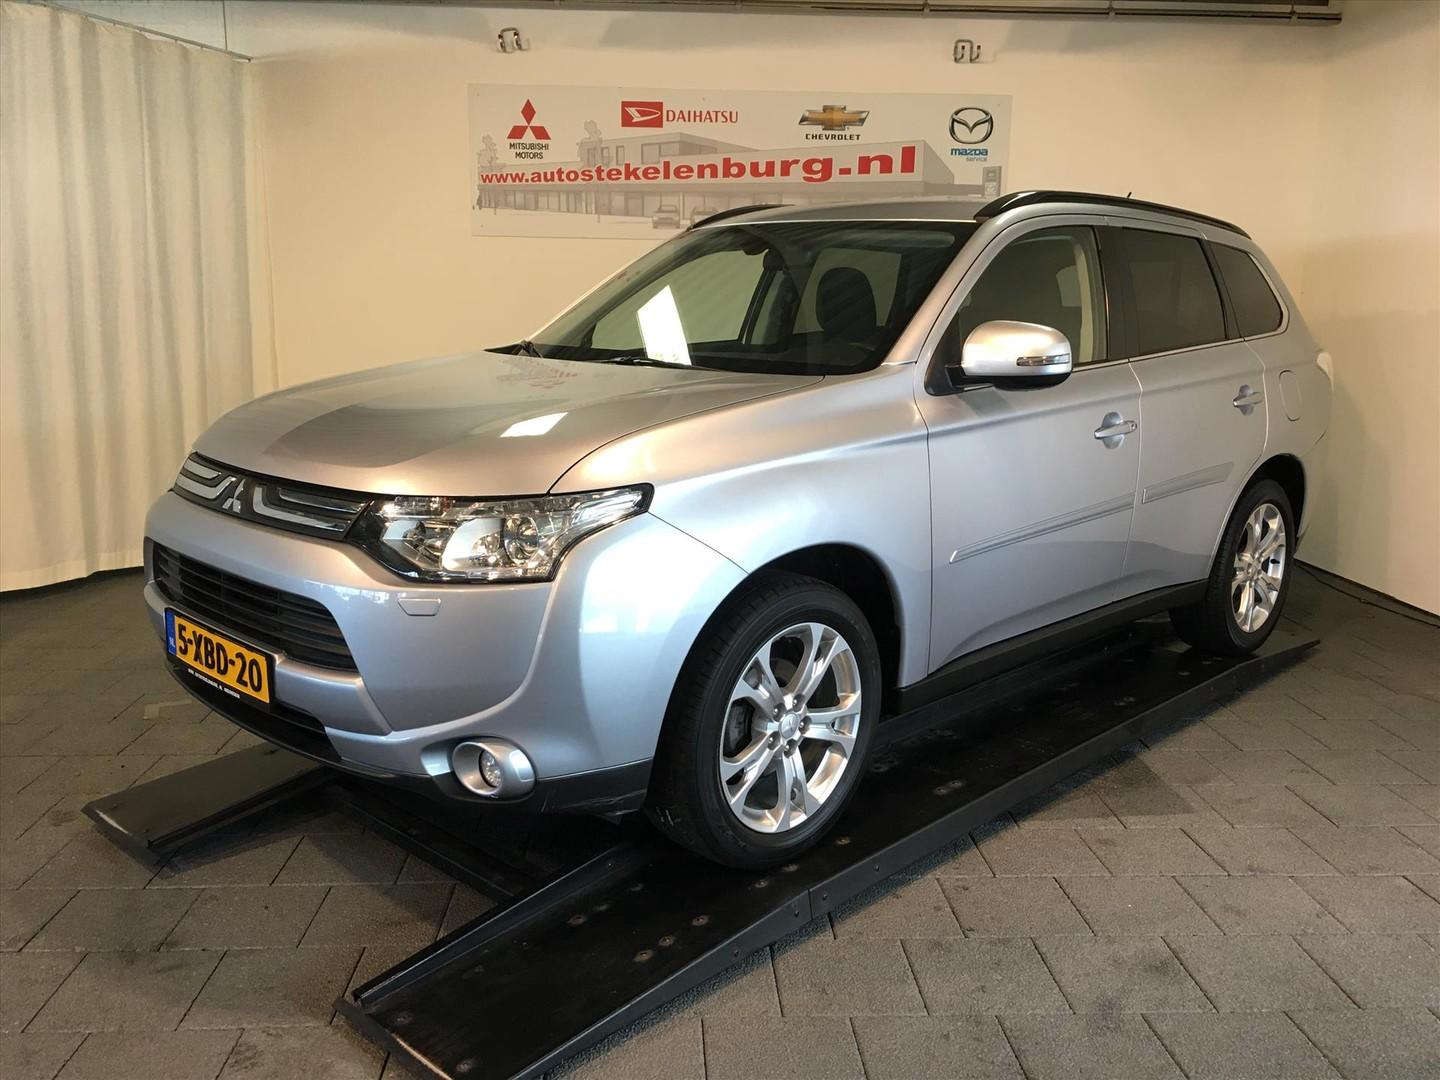 Mitsubishi Outlander 2.0 executive edition, 7per, trekhaak, navi